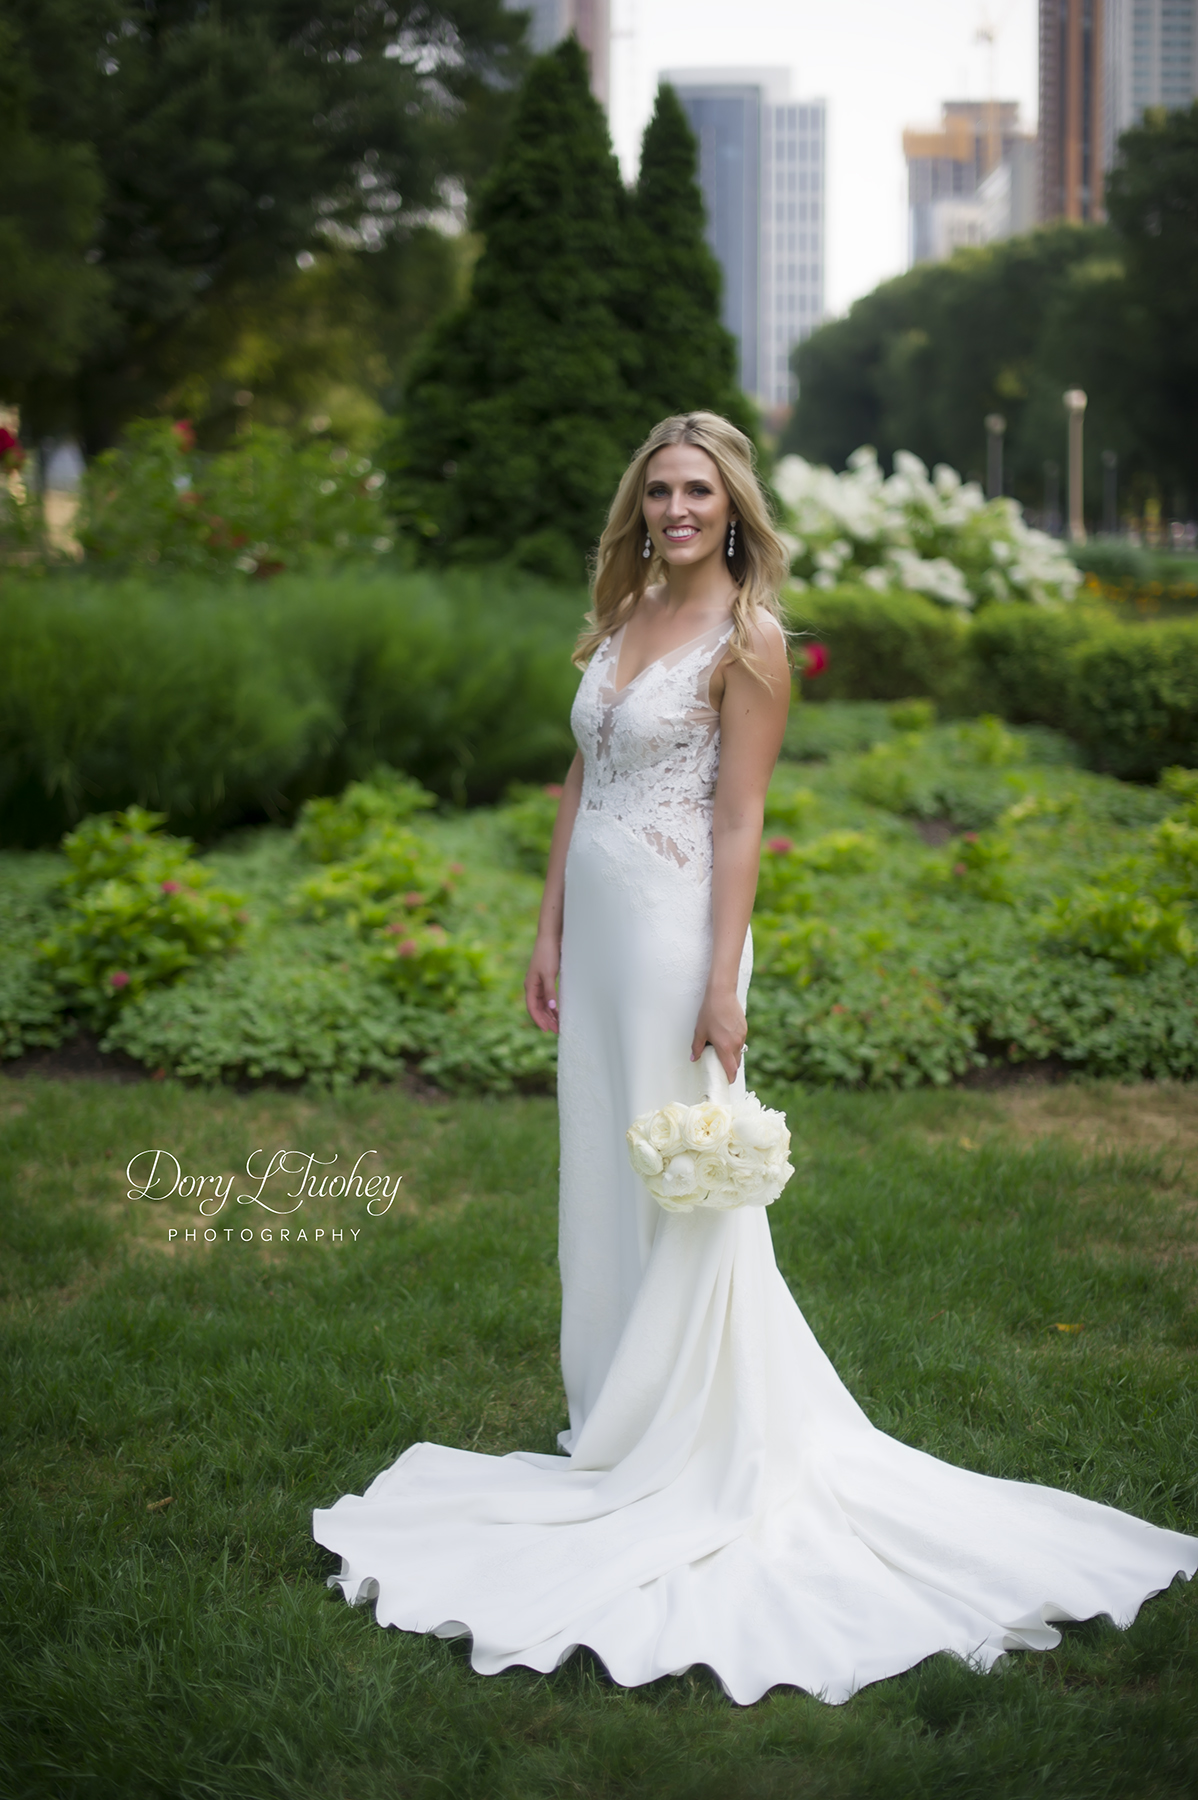 Bride_Dory_chicago_wedding_photographer_cultural_center_lace_grant_park_02.jpg